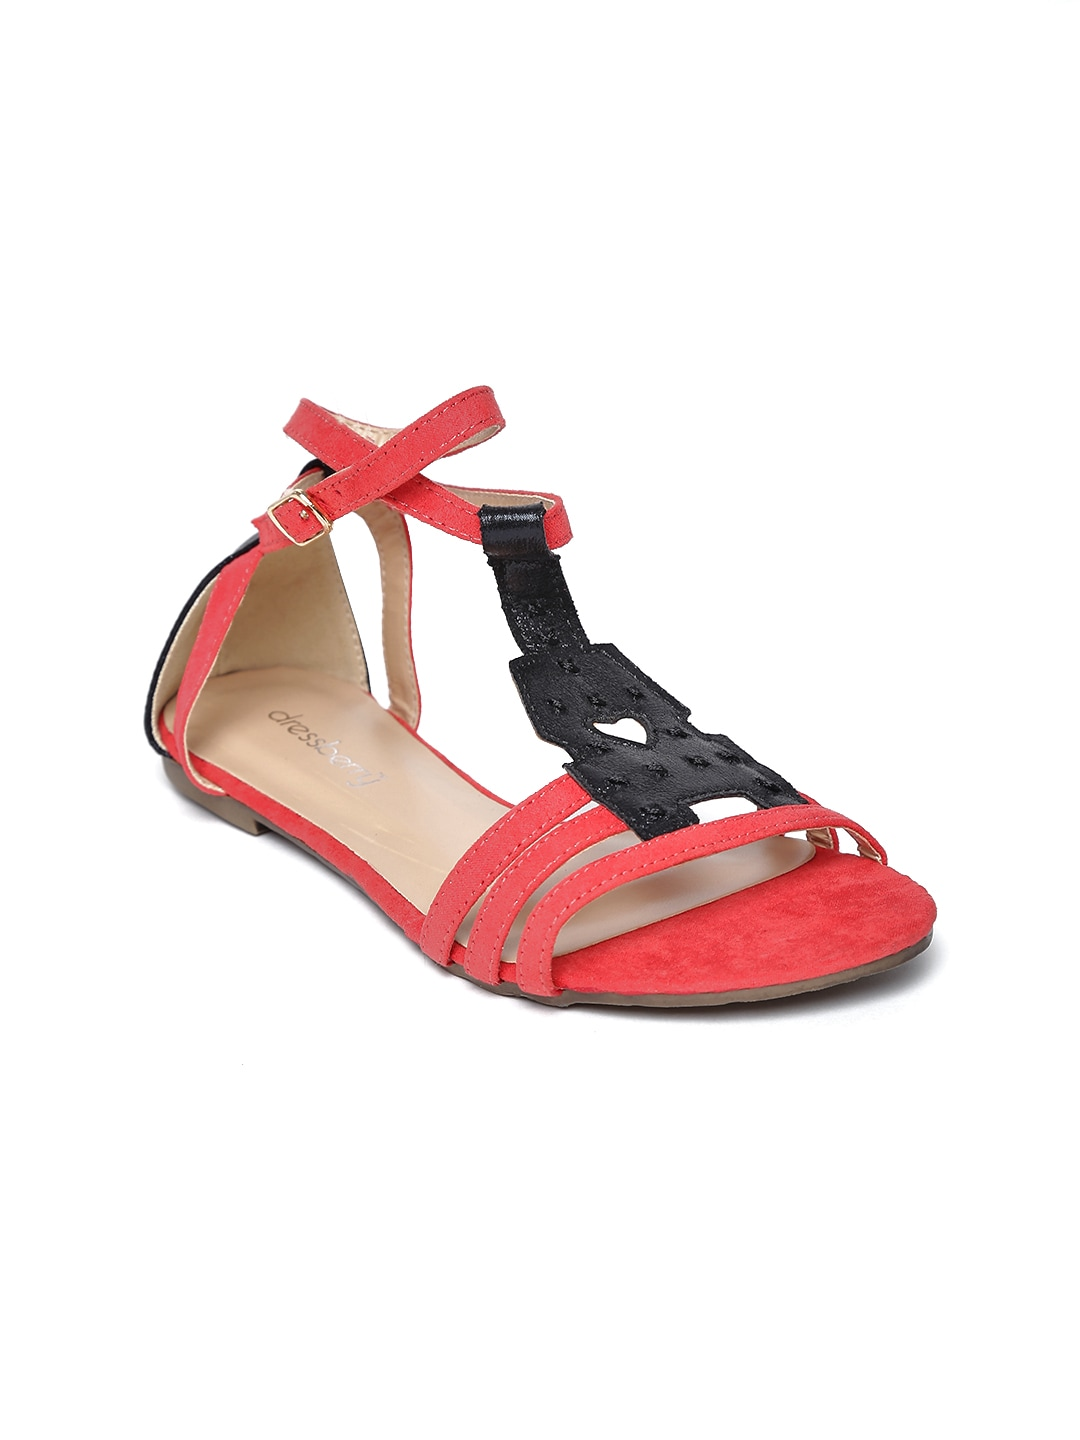 DressBerry Women Red & Black Sandals